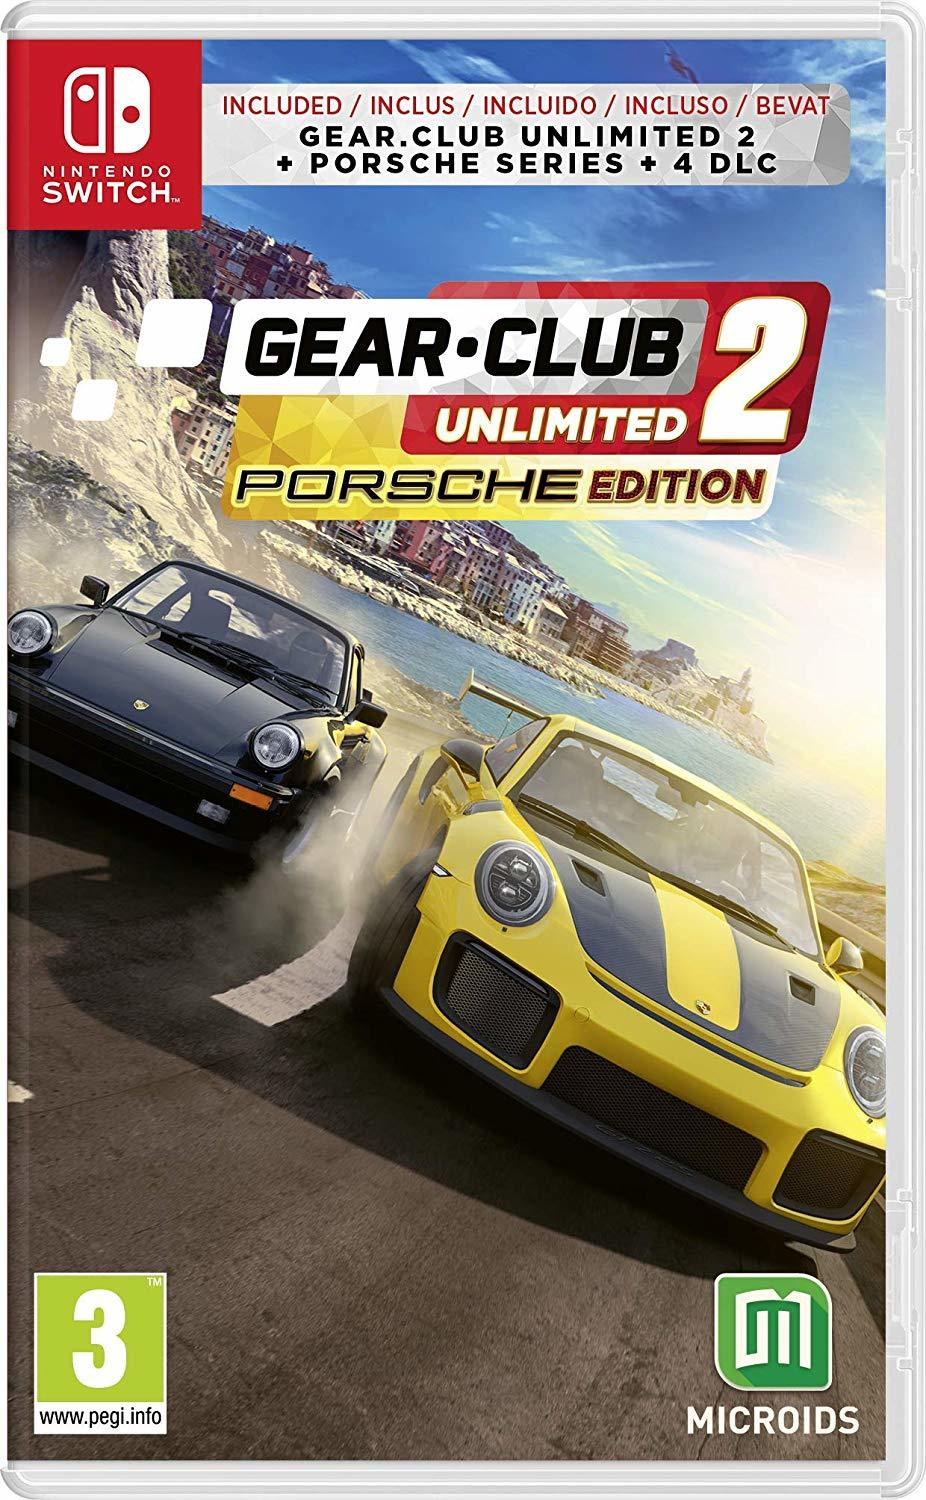 Gear Club Unlimited 2 Porsche Edition - Nintendo Switch